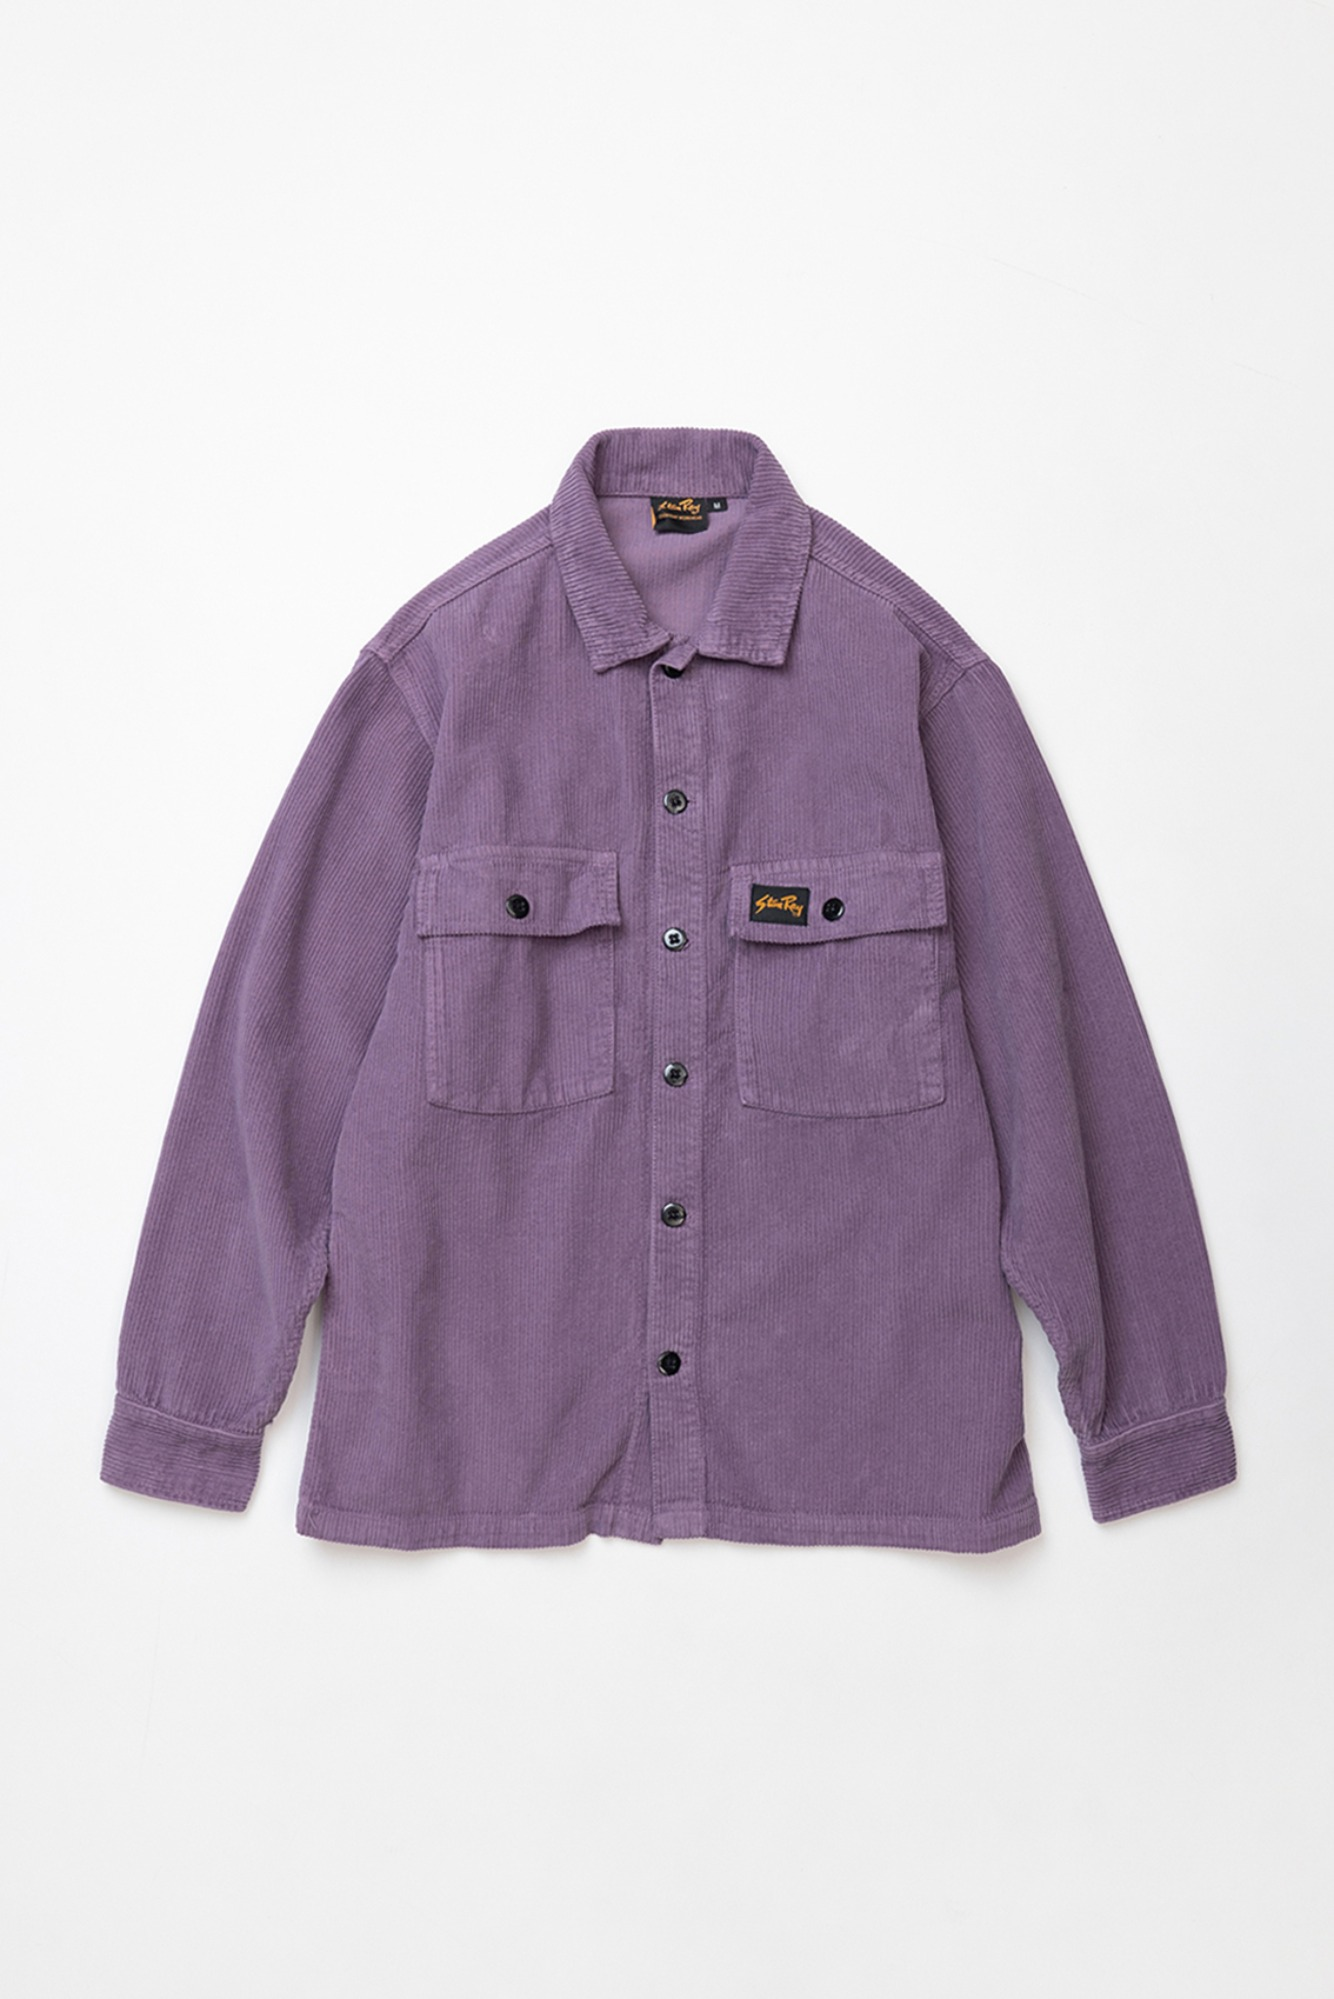 "STAN RAY Cord CPO Shirt ""Crushed Purple Cord"""